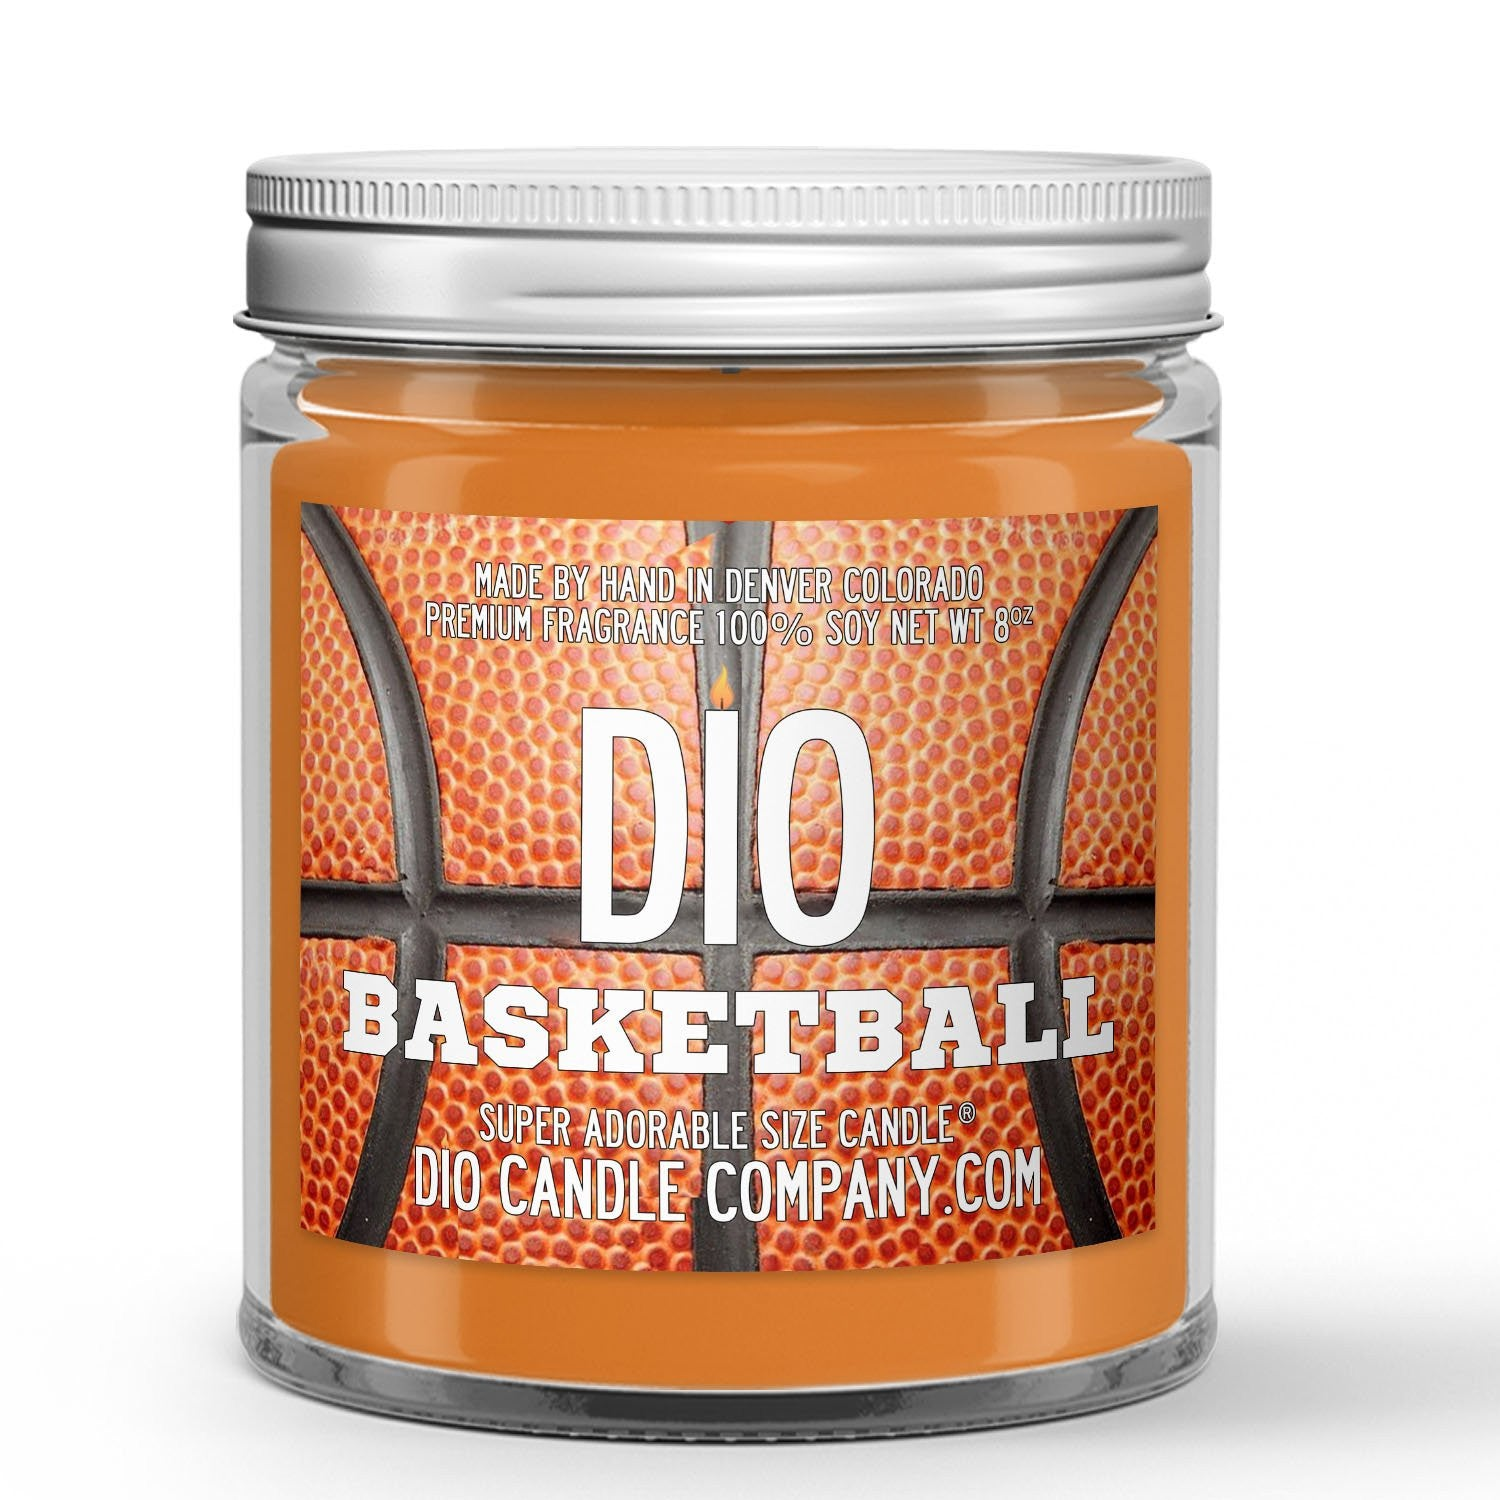 Personalized Basketball Candle